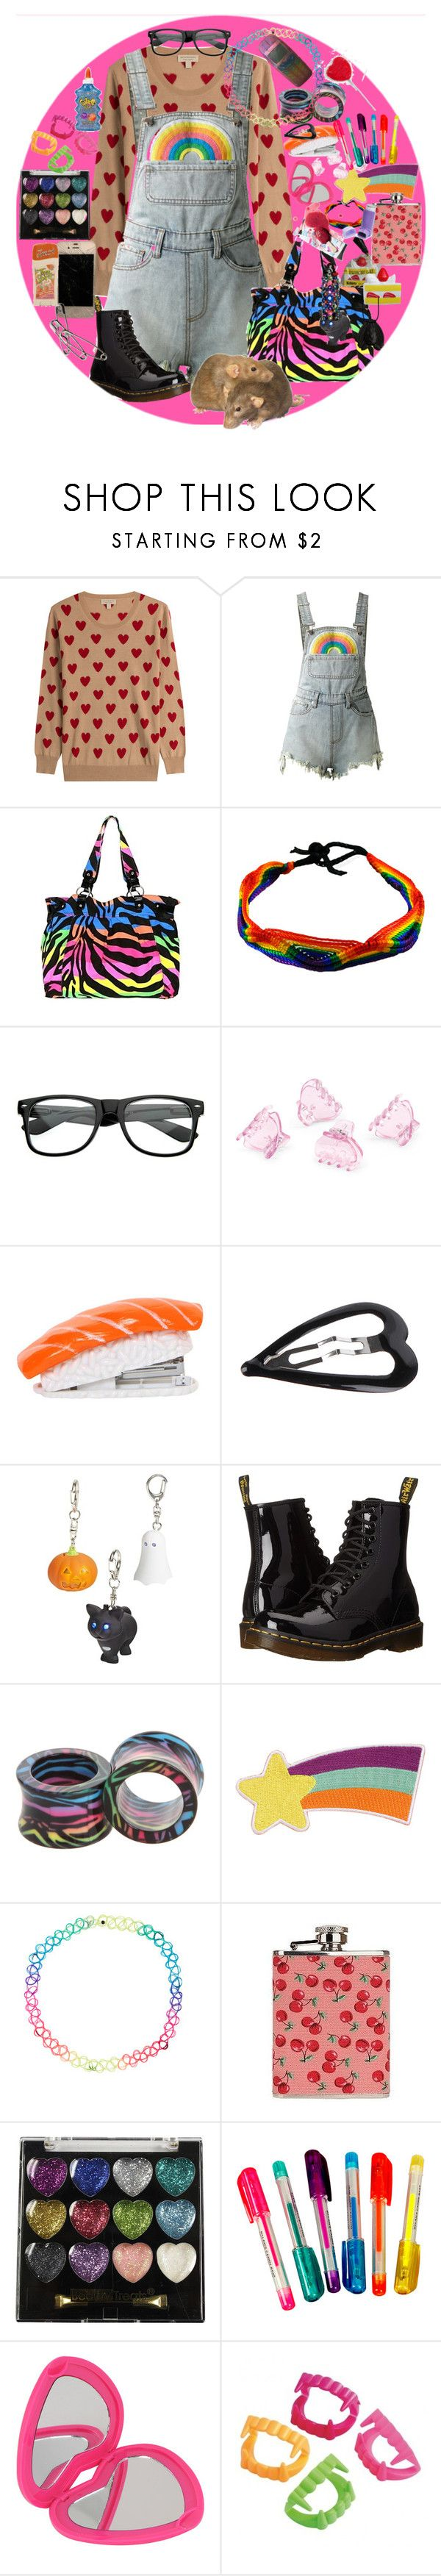 """cant undo the scars up and down our hearts"" by bringmemethehorizon ❤ liked on Polyvore featuring Burberry, UNIF, Hot Topic, ZeroUV, H&M, Forever 21, Dr. Martens, Accessorize, SAM. and Dylan's Candy Bar"